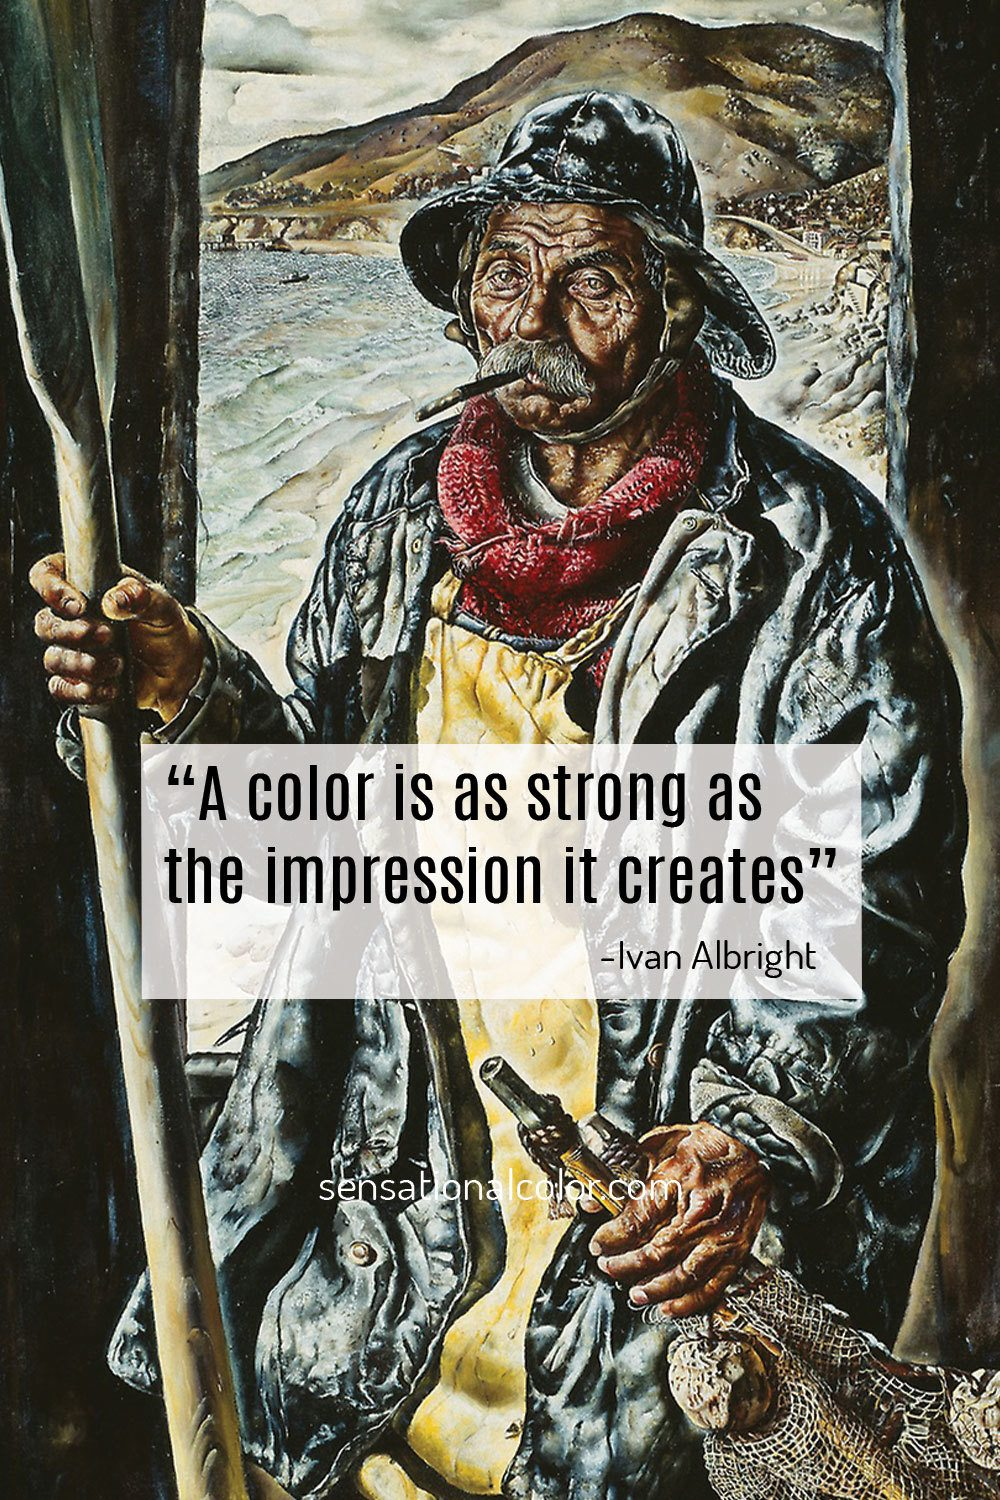 """A color is as strong as the impression it creates.""-Ivan Albright"